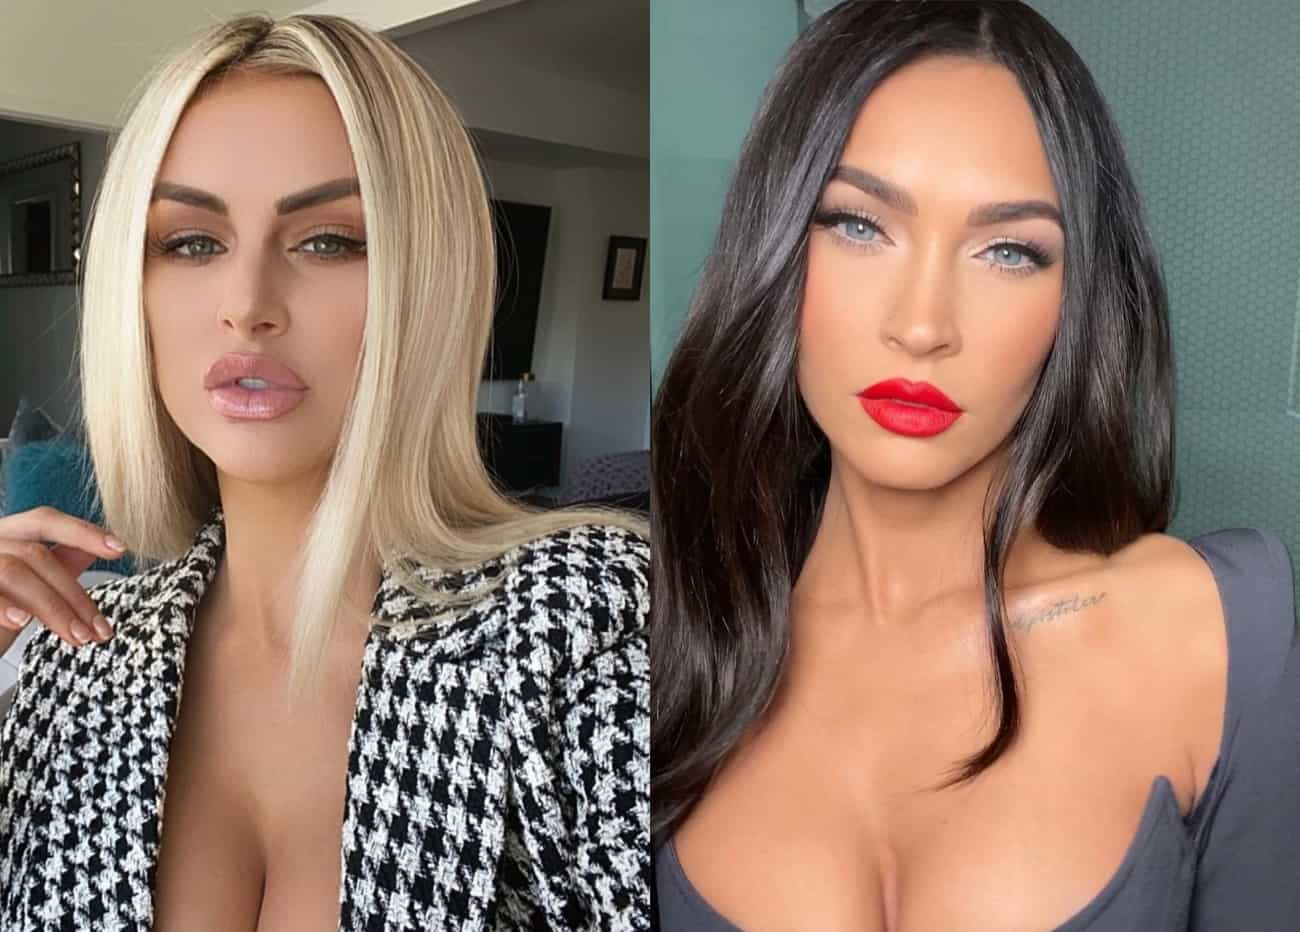 Vanderpump Rules' Lala Kent Reacts to Megan Fox Shutting Down Feud Rumors, Insists She Works for Her Roles in Randall Emmett's Films